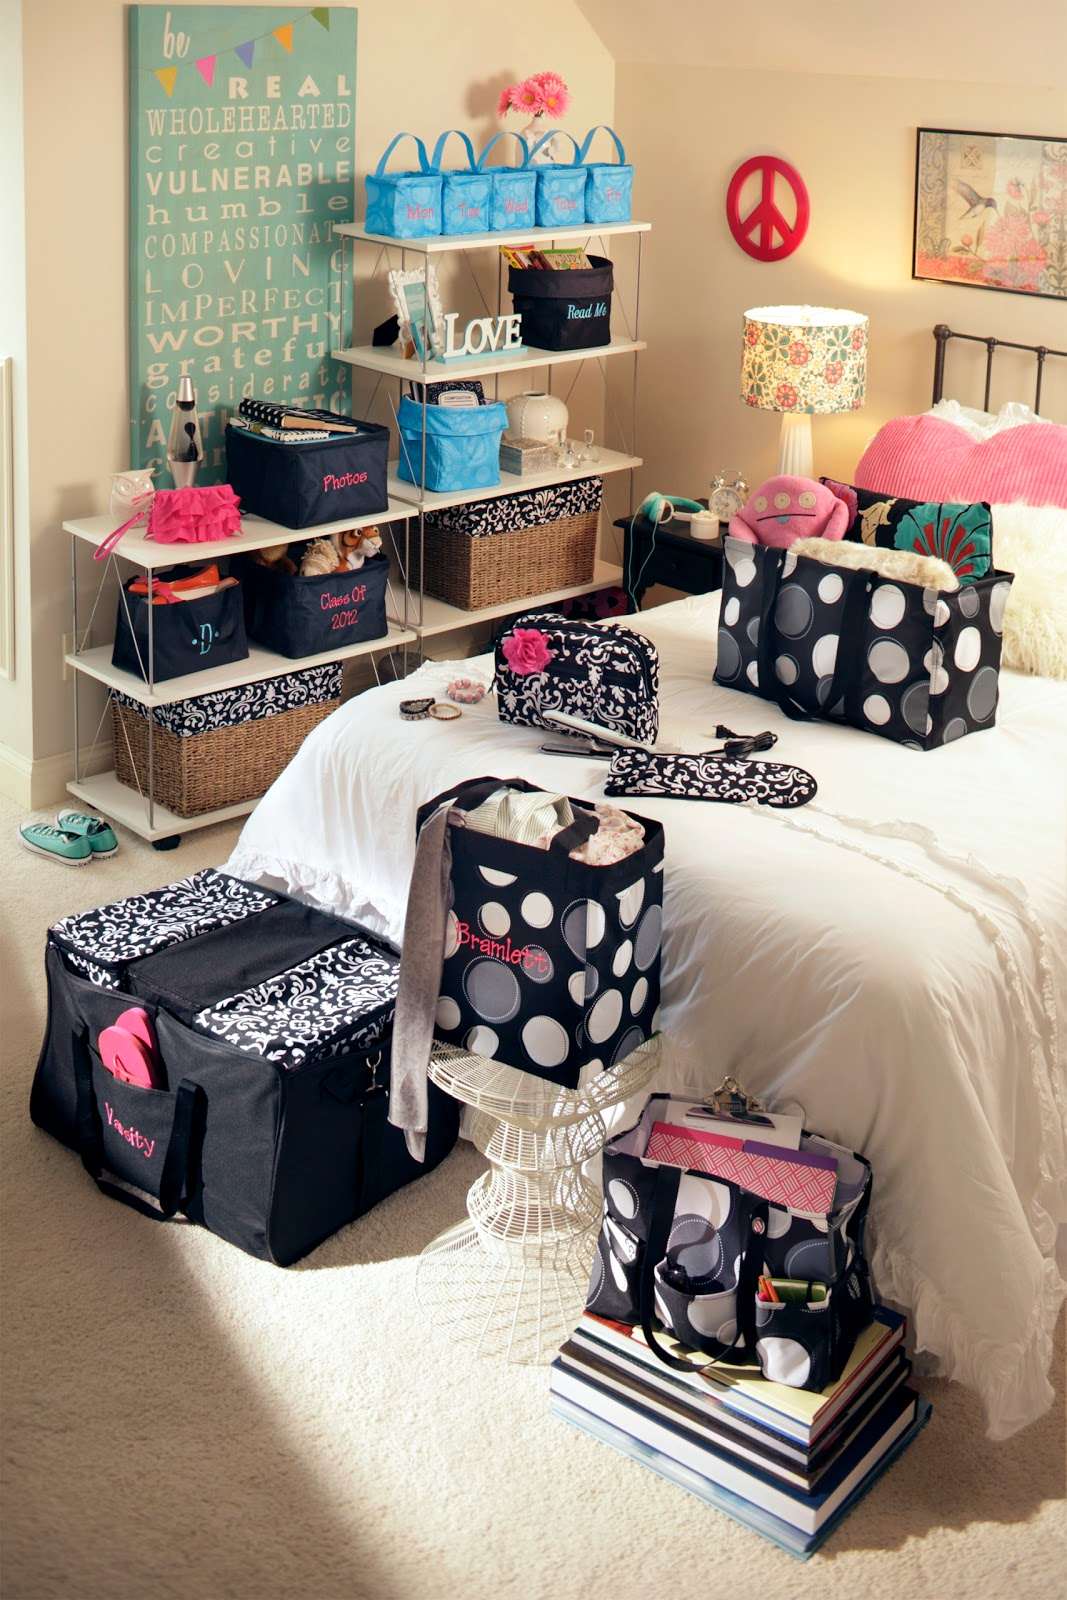 Amber s Blog All things 31 Organize the dorm room 31